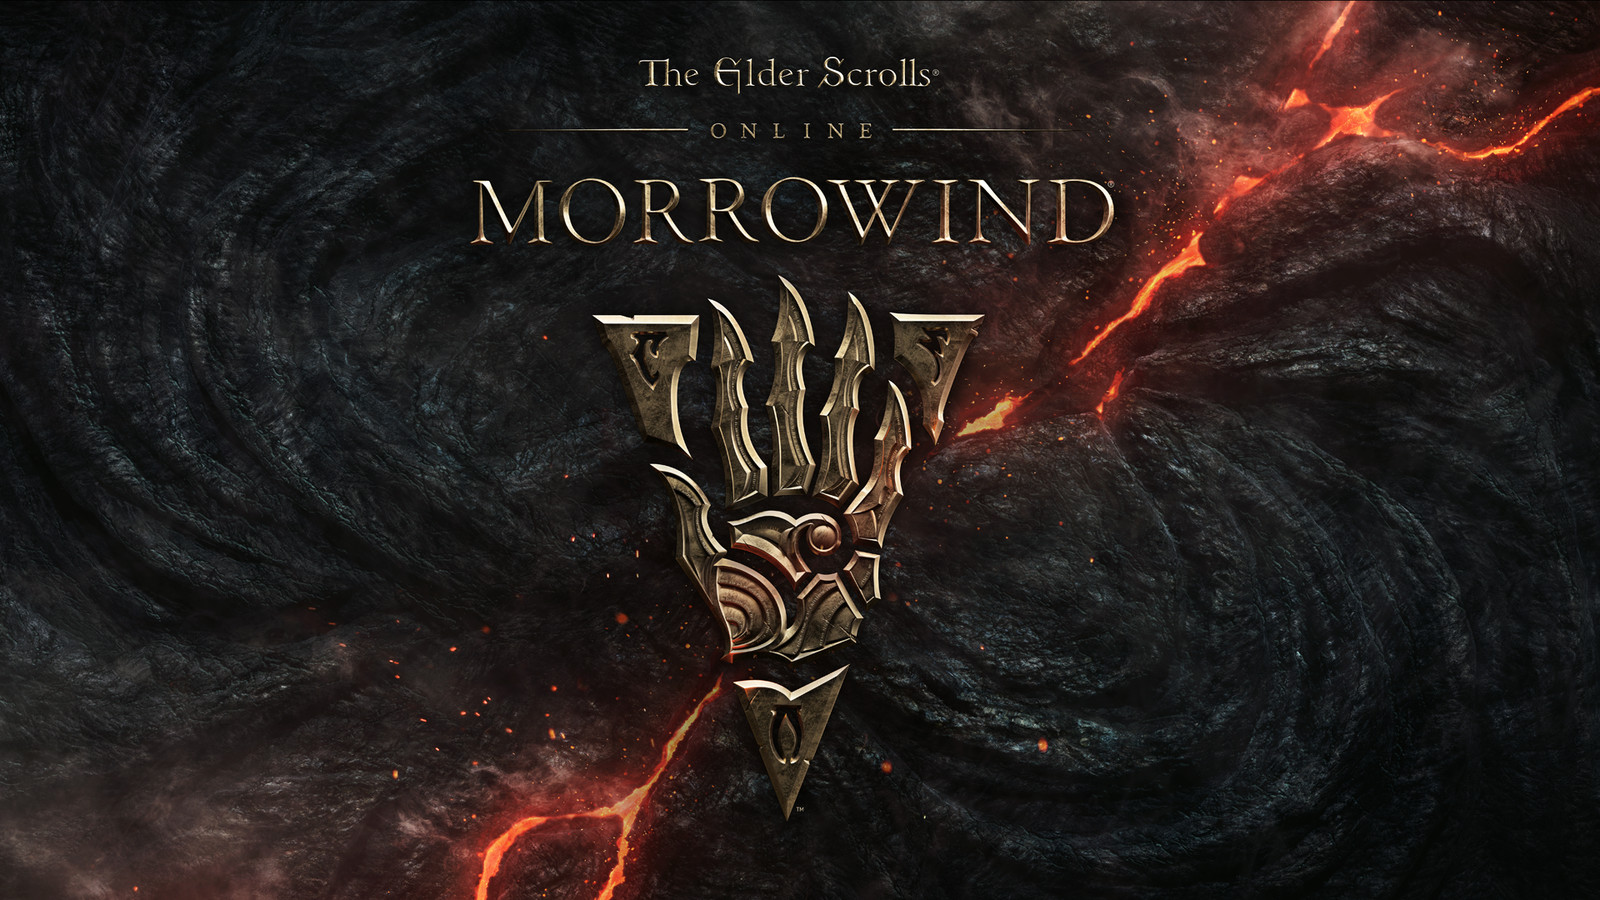 Morrowind expansion coming to The Elder Scrolls Online - Polygon